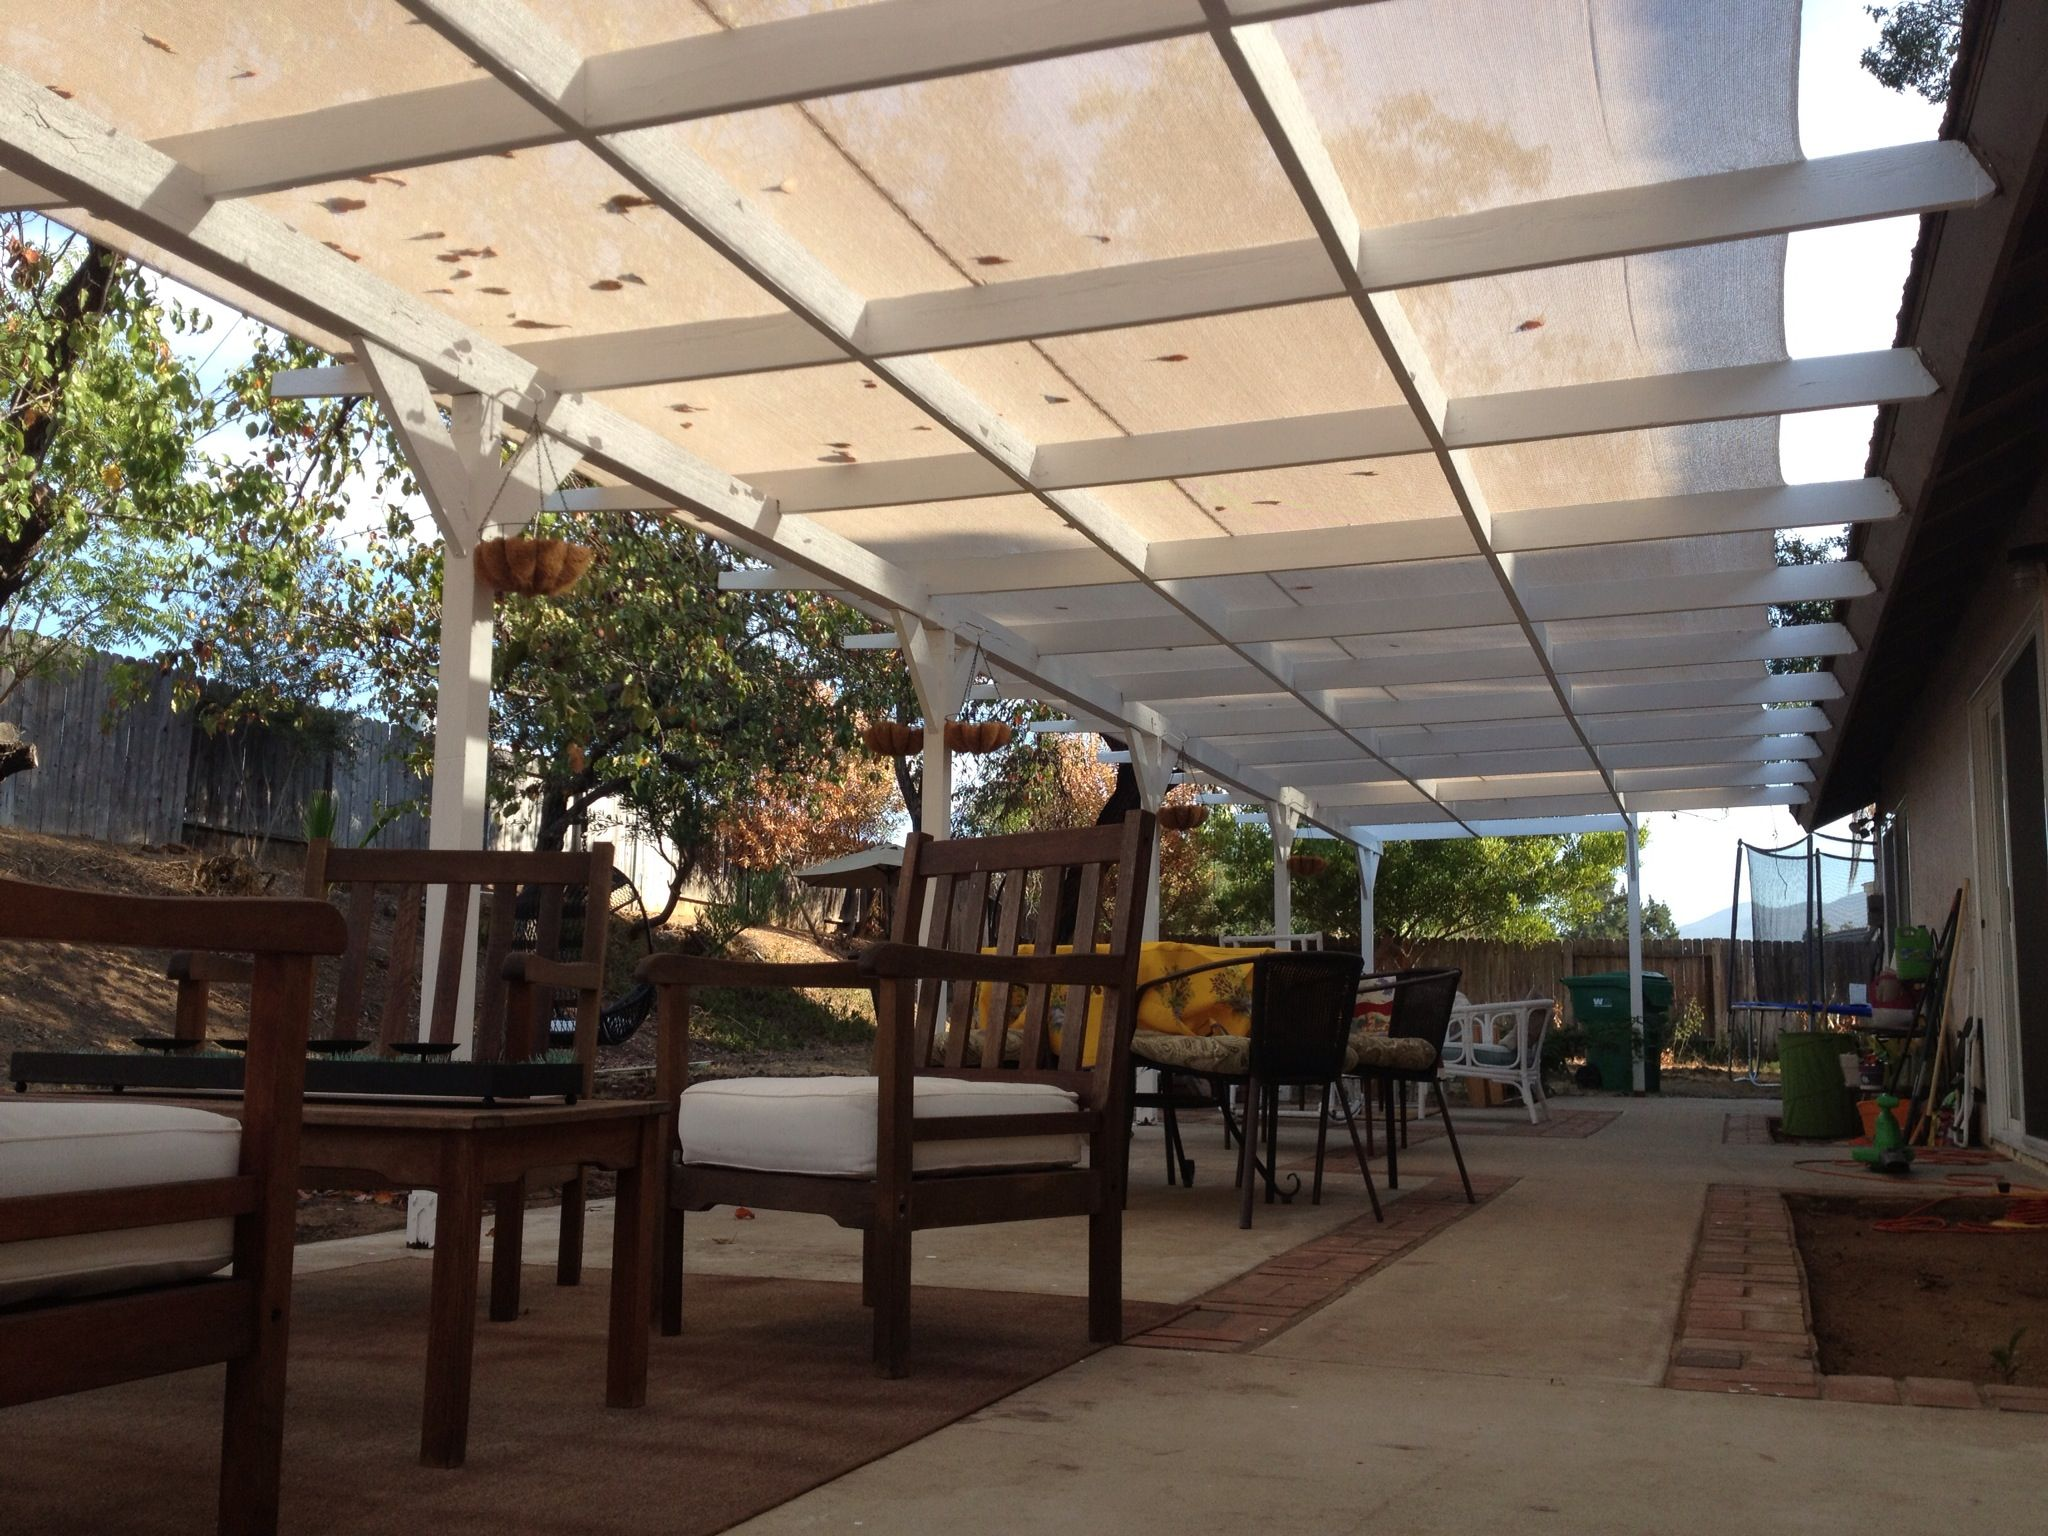 #Shade #cloth over #pergola instead of living the pergola open or of having laserlight sheeting